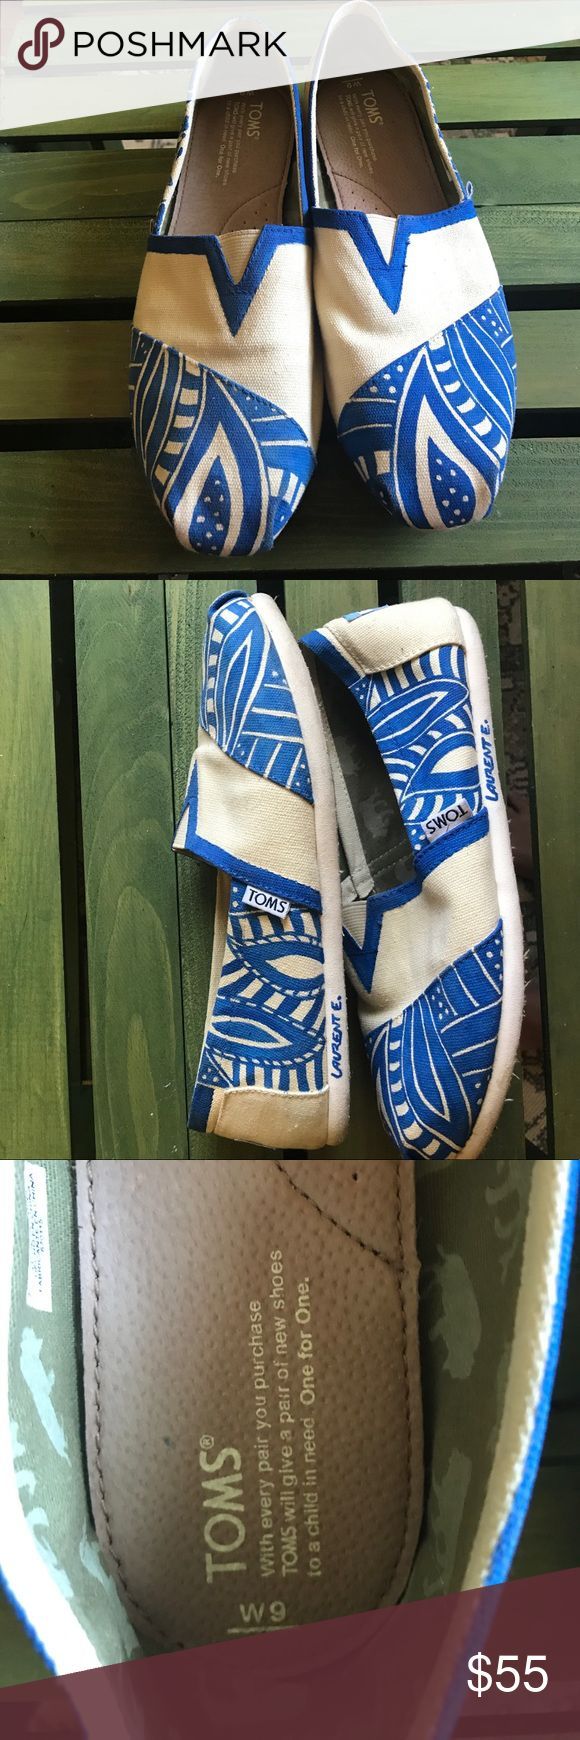 Haiti hand painted Toms Beautiful hand painted Toms from the island of Labadee in Haiti. One of a kind, unique and colorful with a paisley island print. Worn once, very light wear on soles which is mostly discoloration. Size 9W Toms Shoes